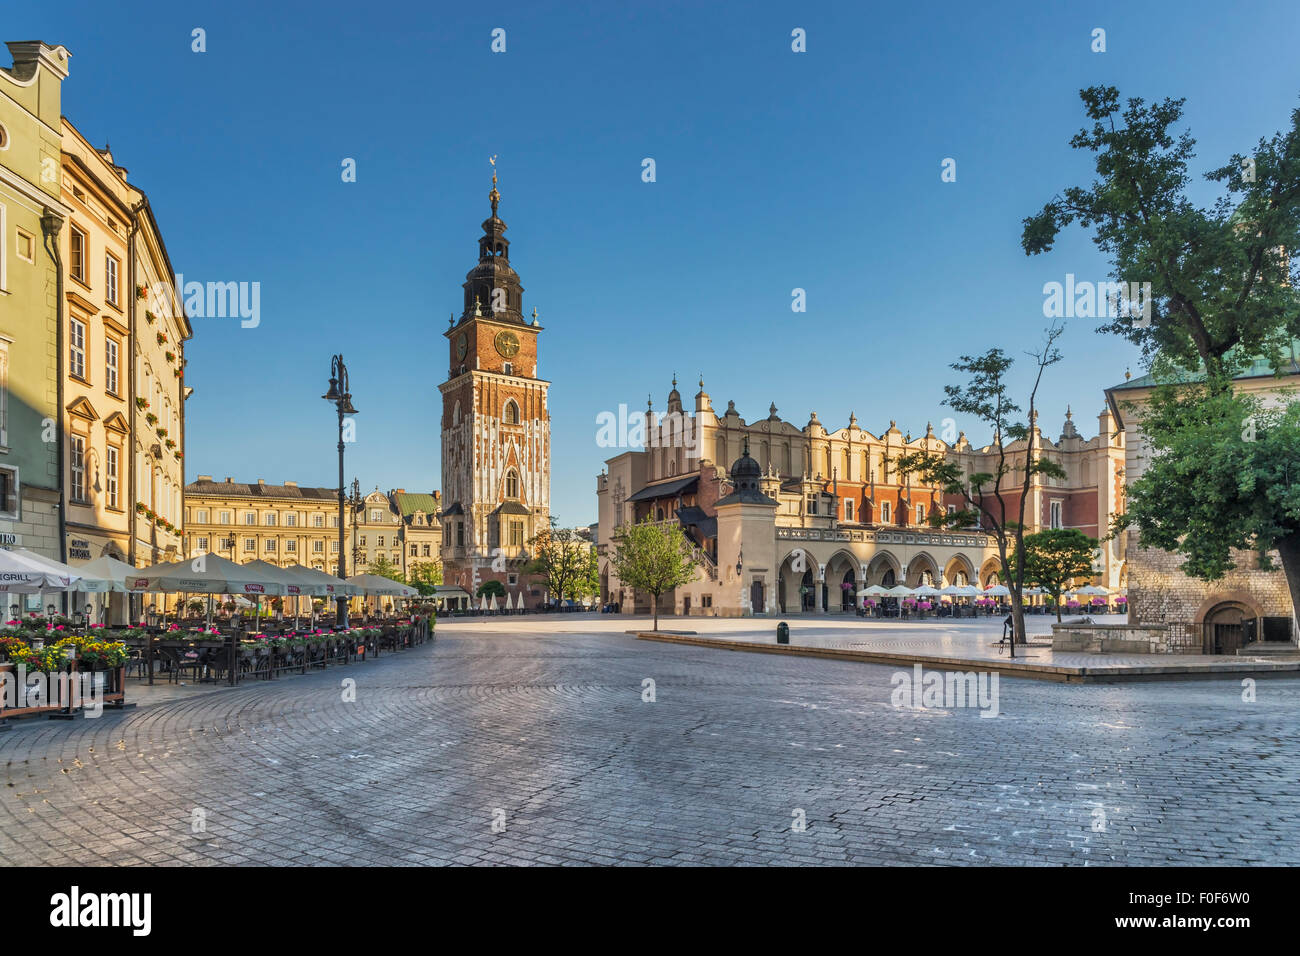 The 70 meter high town hall tower, Krakow, Lesser Poland, Poland, Europe - Stock Image